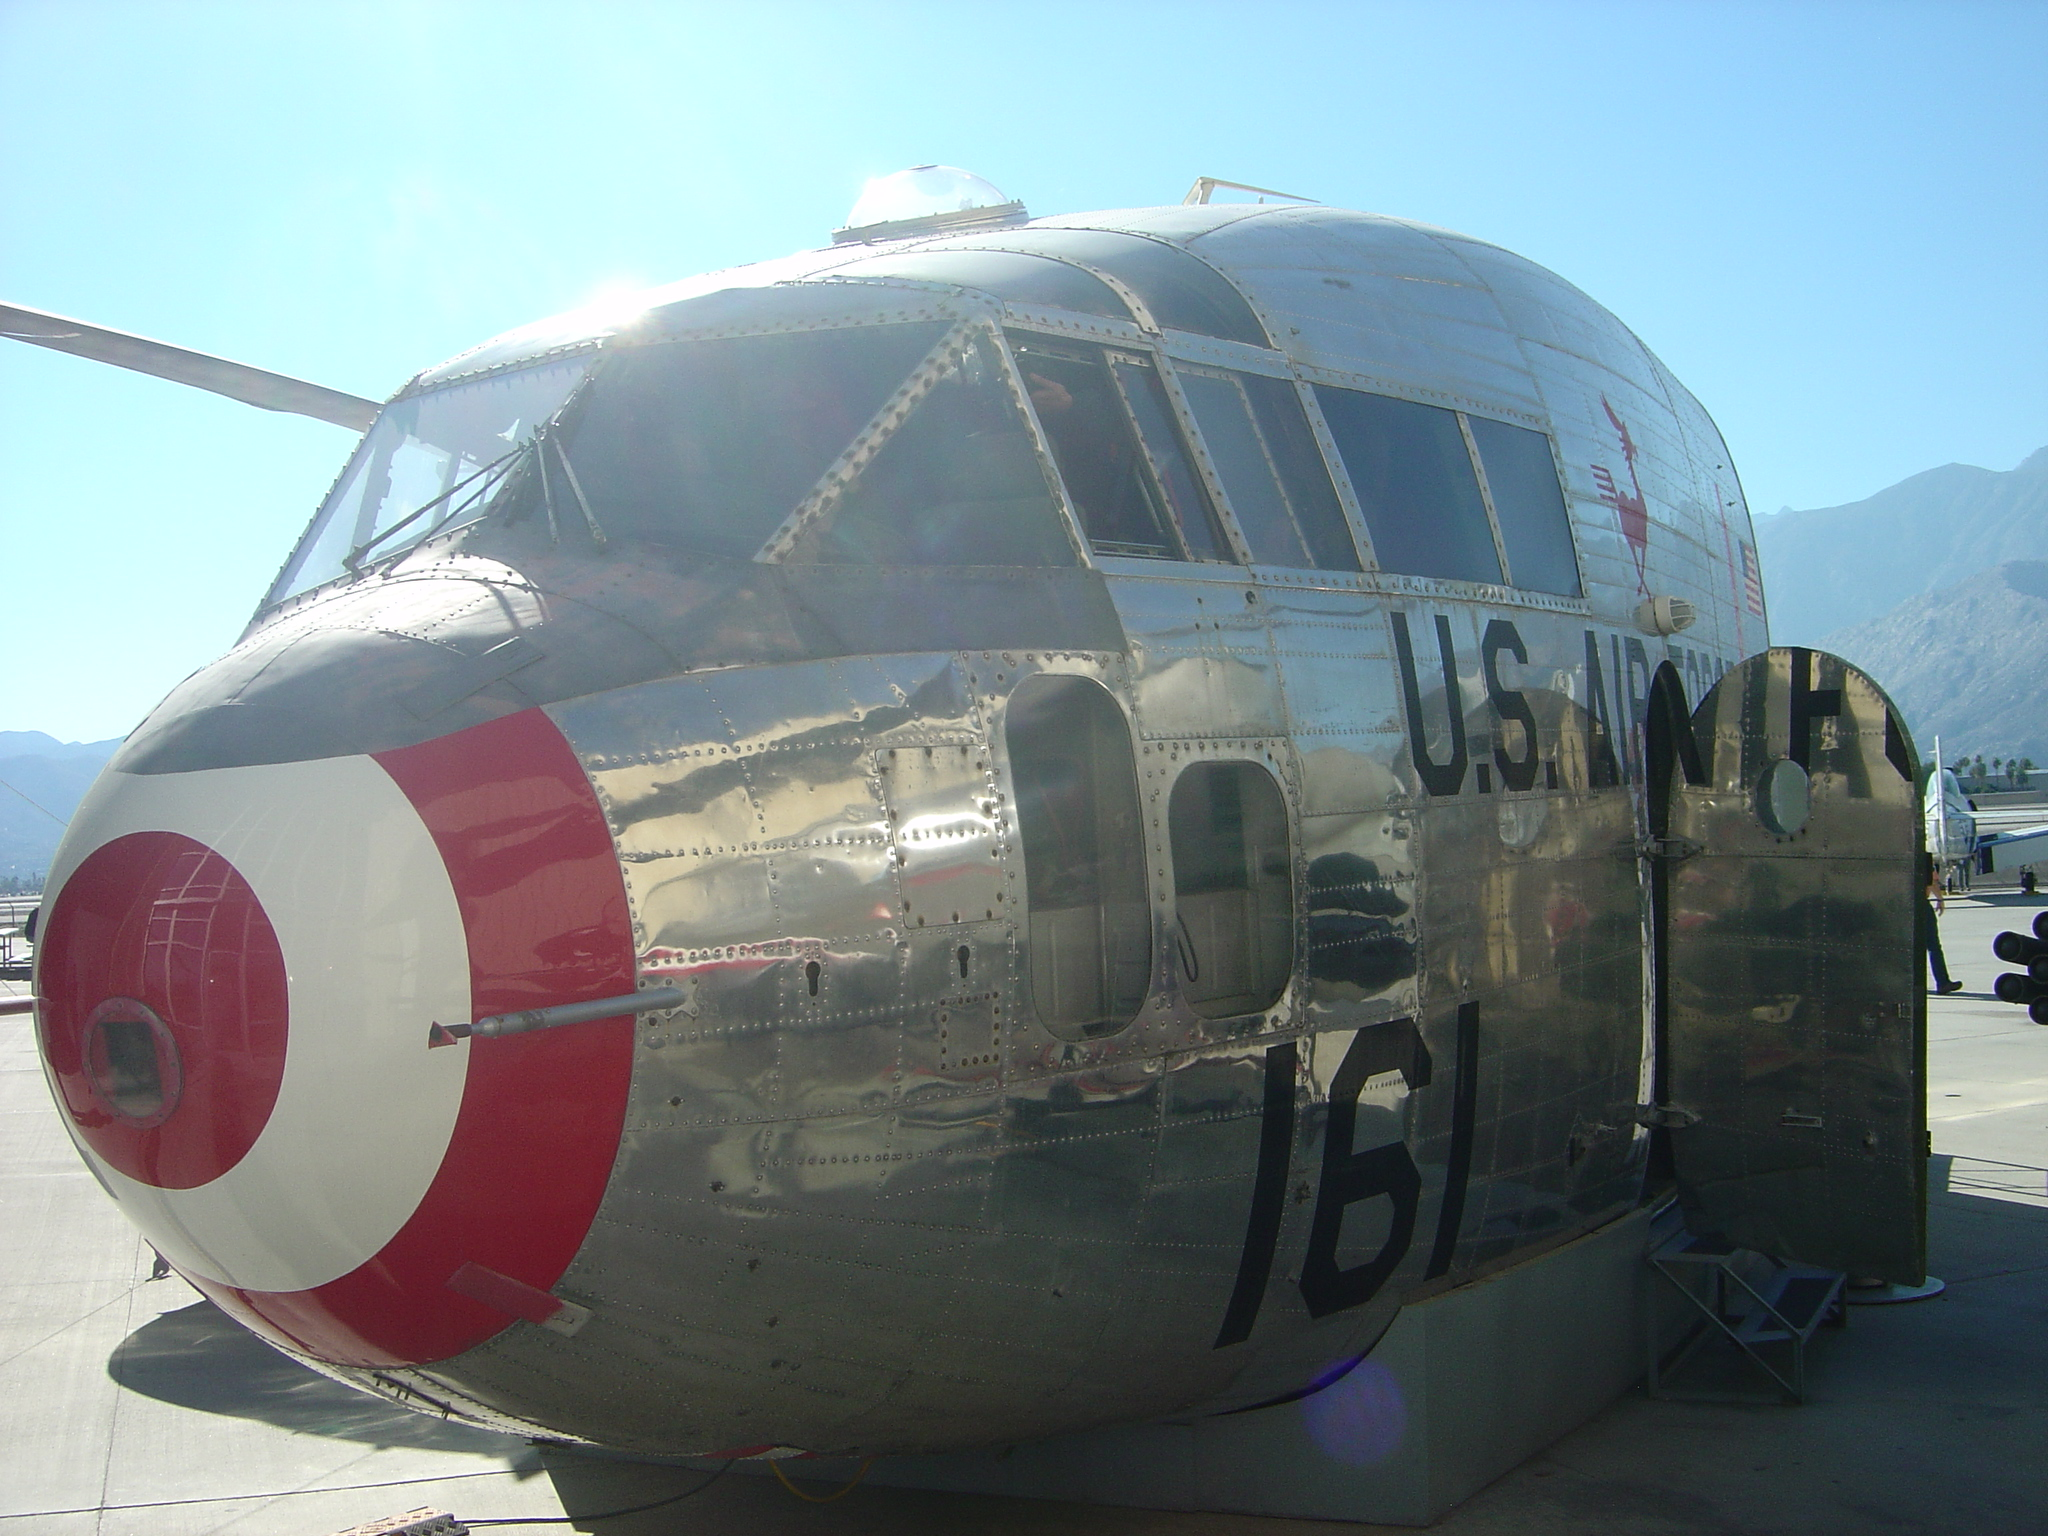 Fairchild C-119 Flying Boxcar